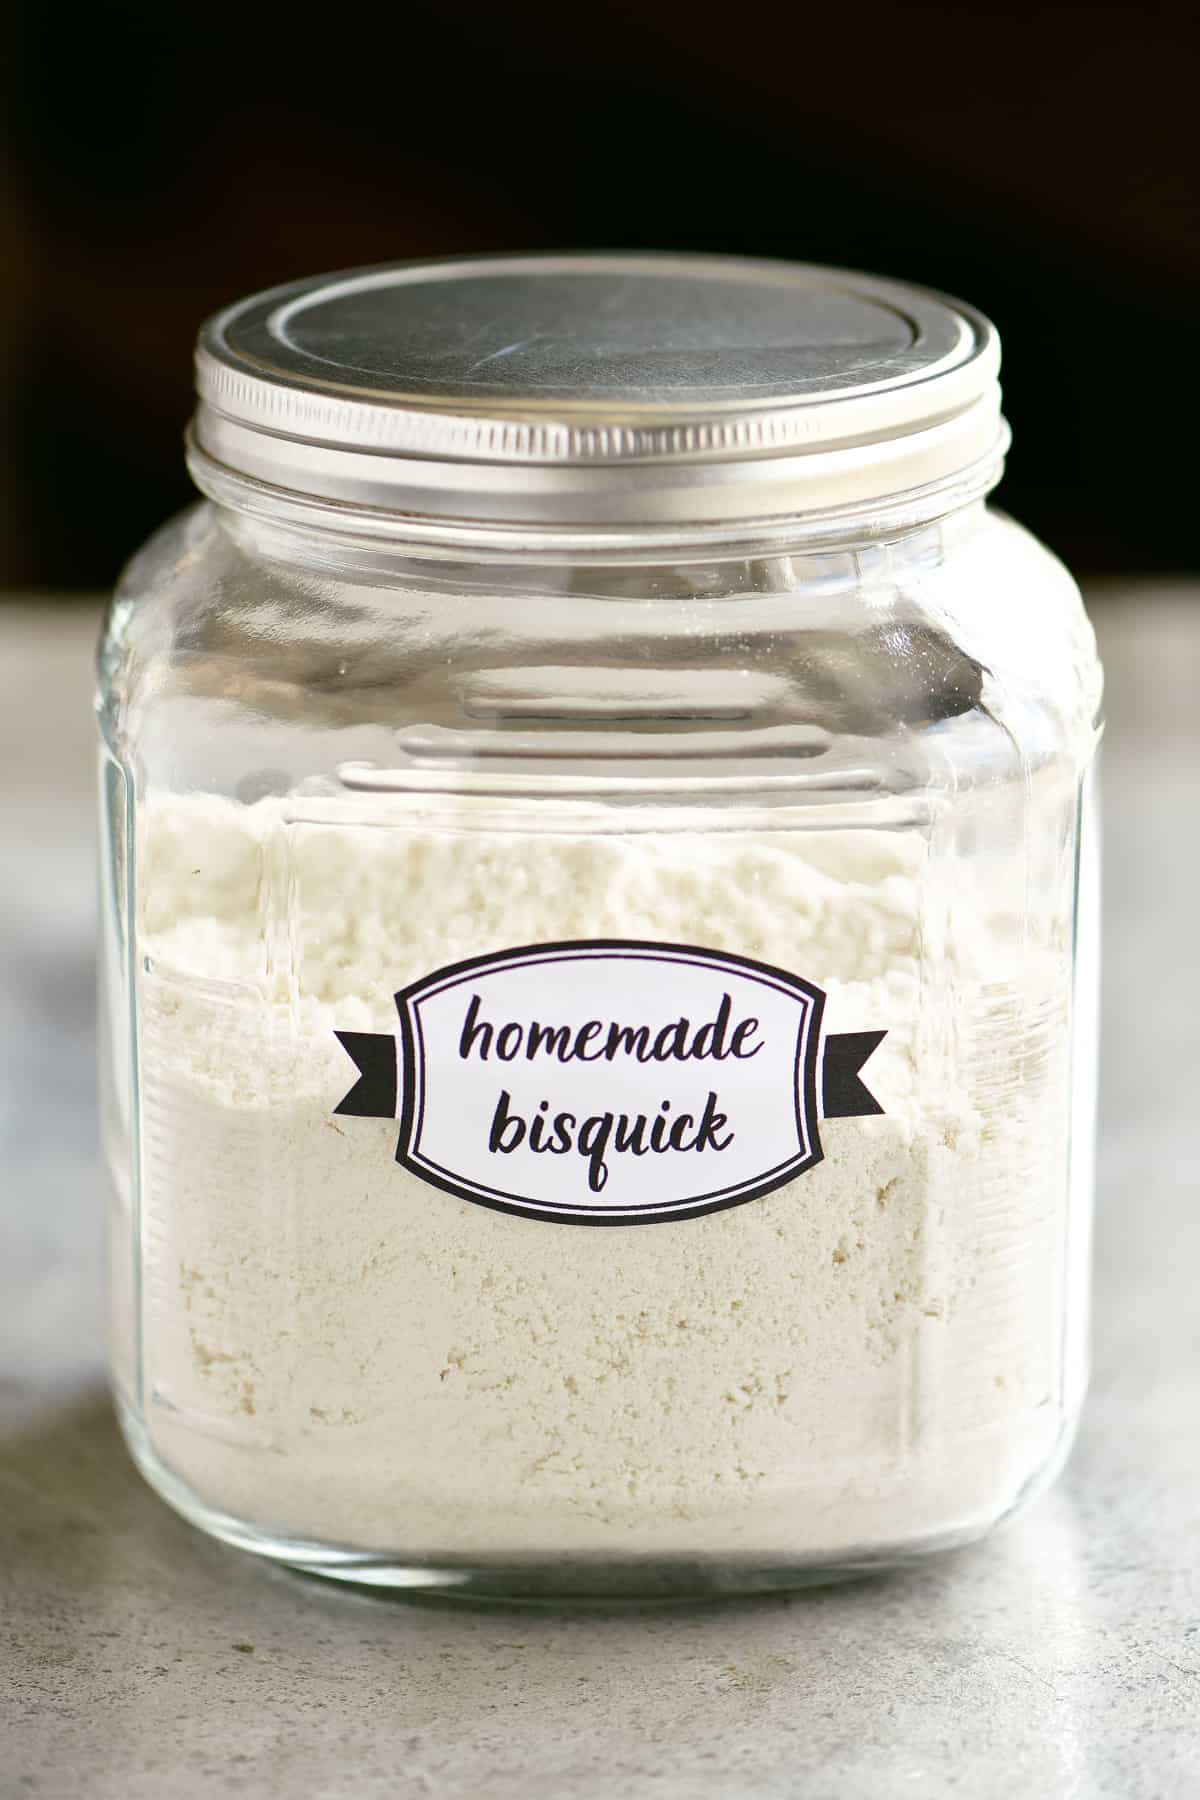 homemade bisquick copycat recipe in jar with lid